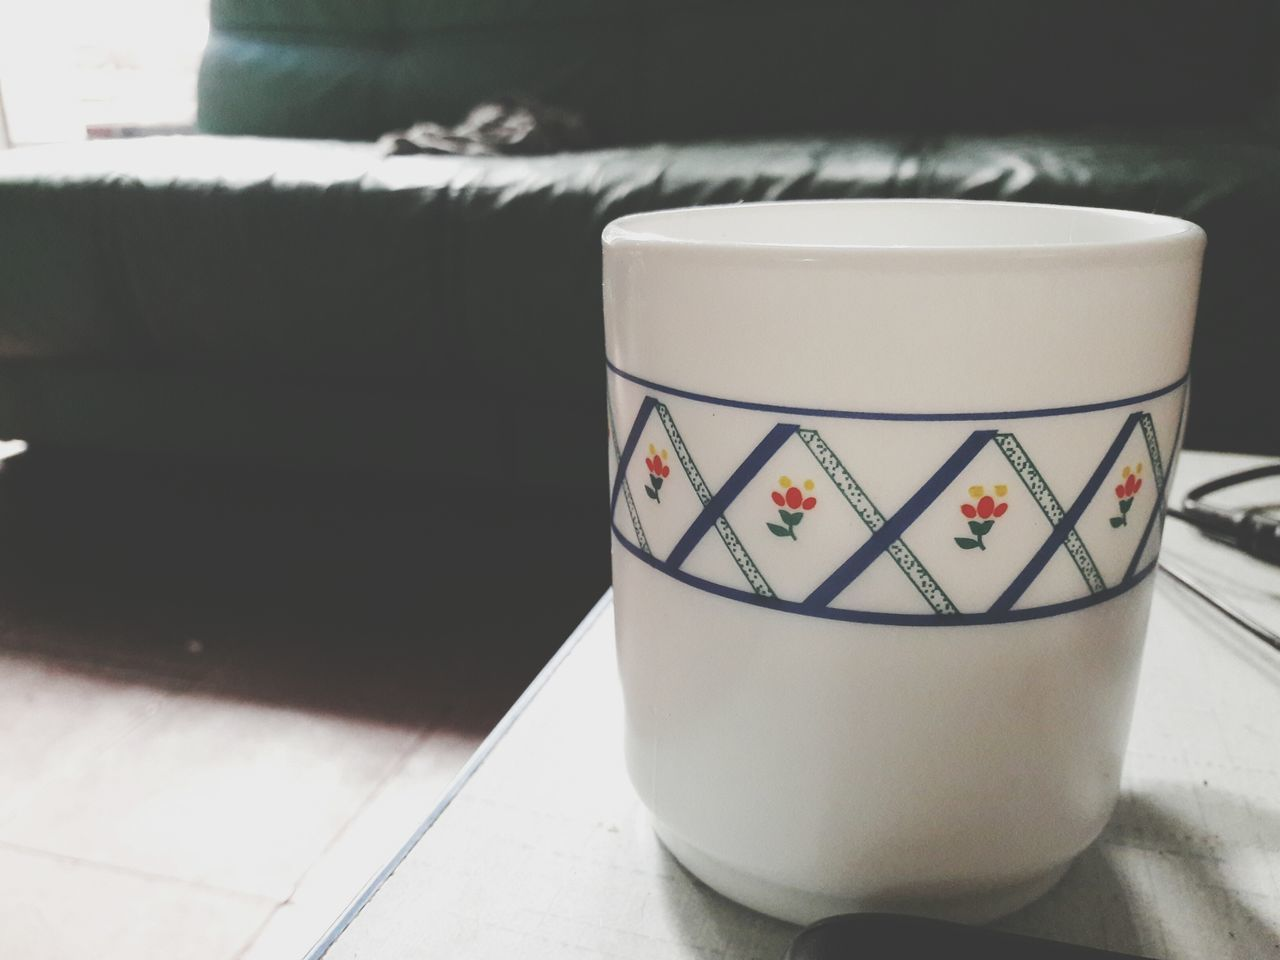 indoors, drink, no people, coffee cup, table, coffee - drink, close-up, day, freshness